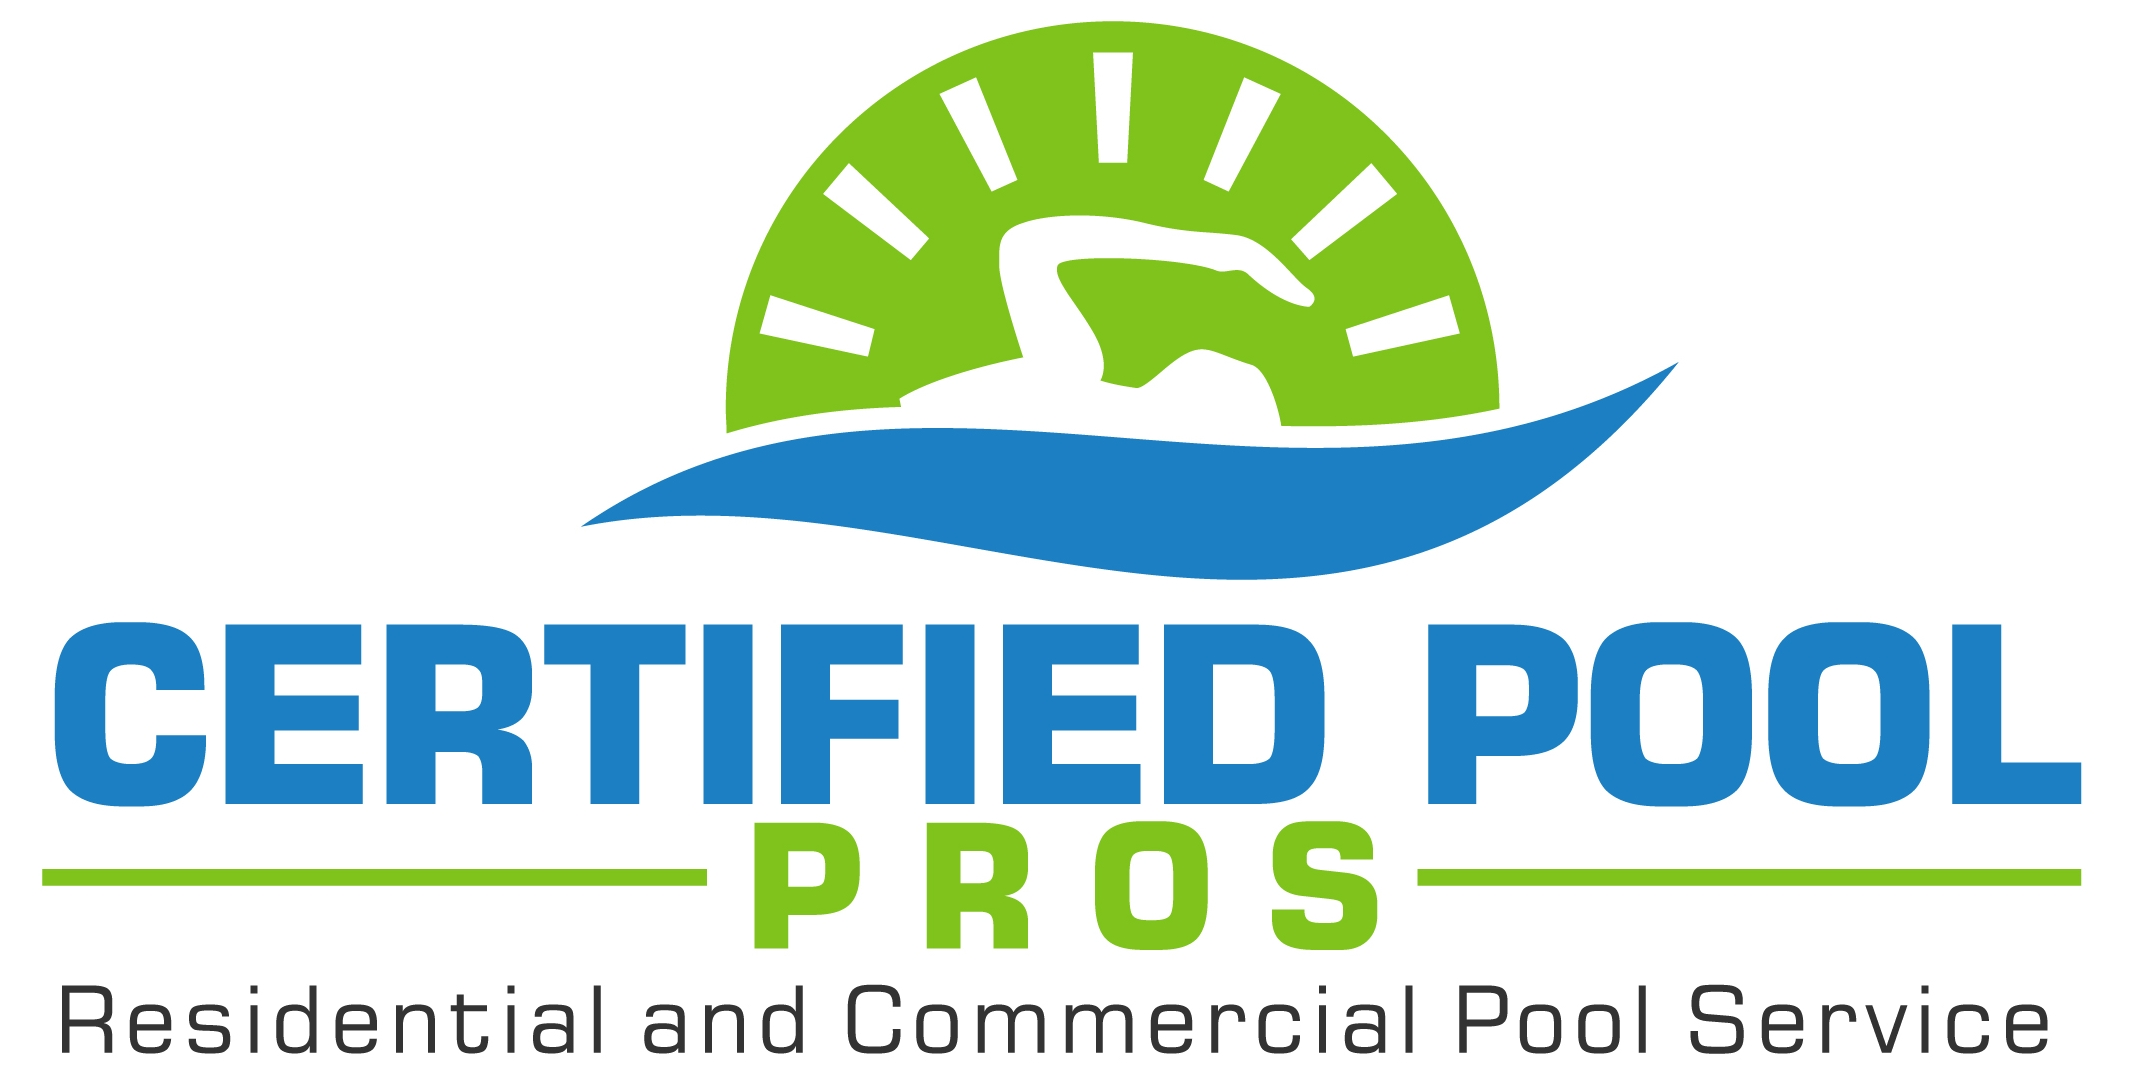 Certified Pool Pros